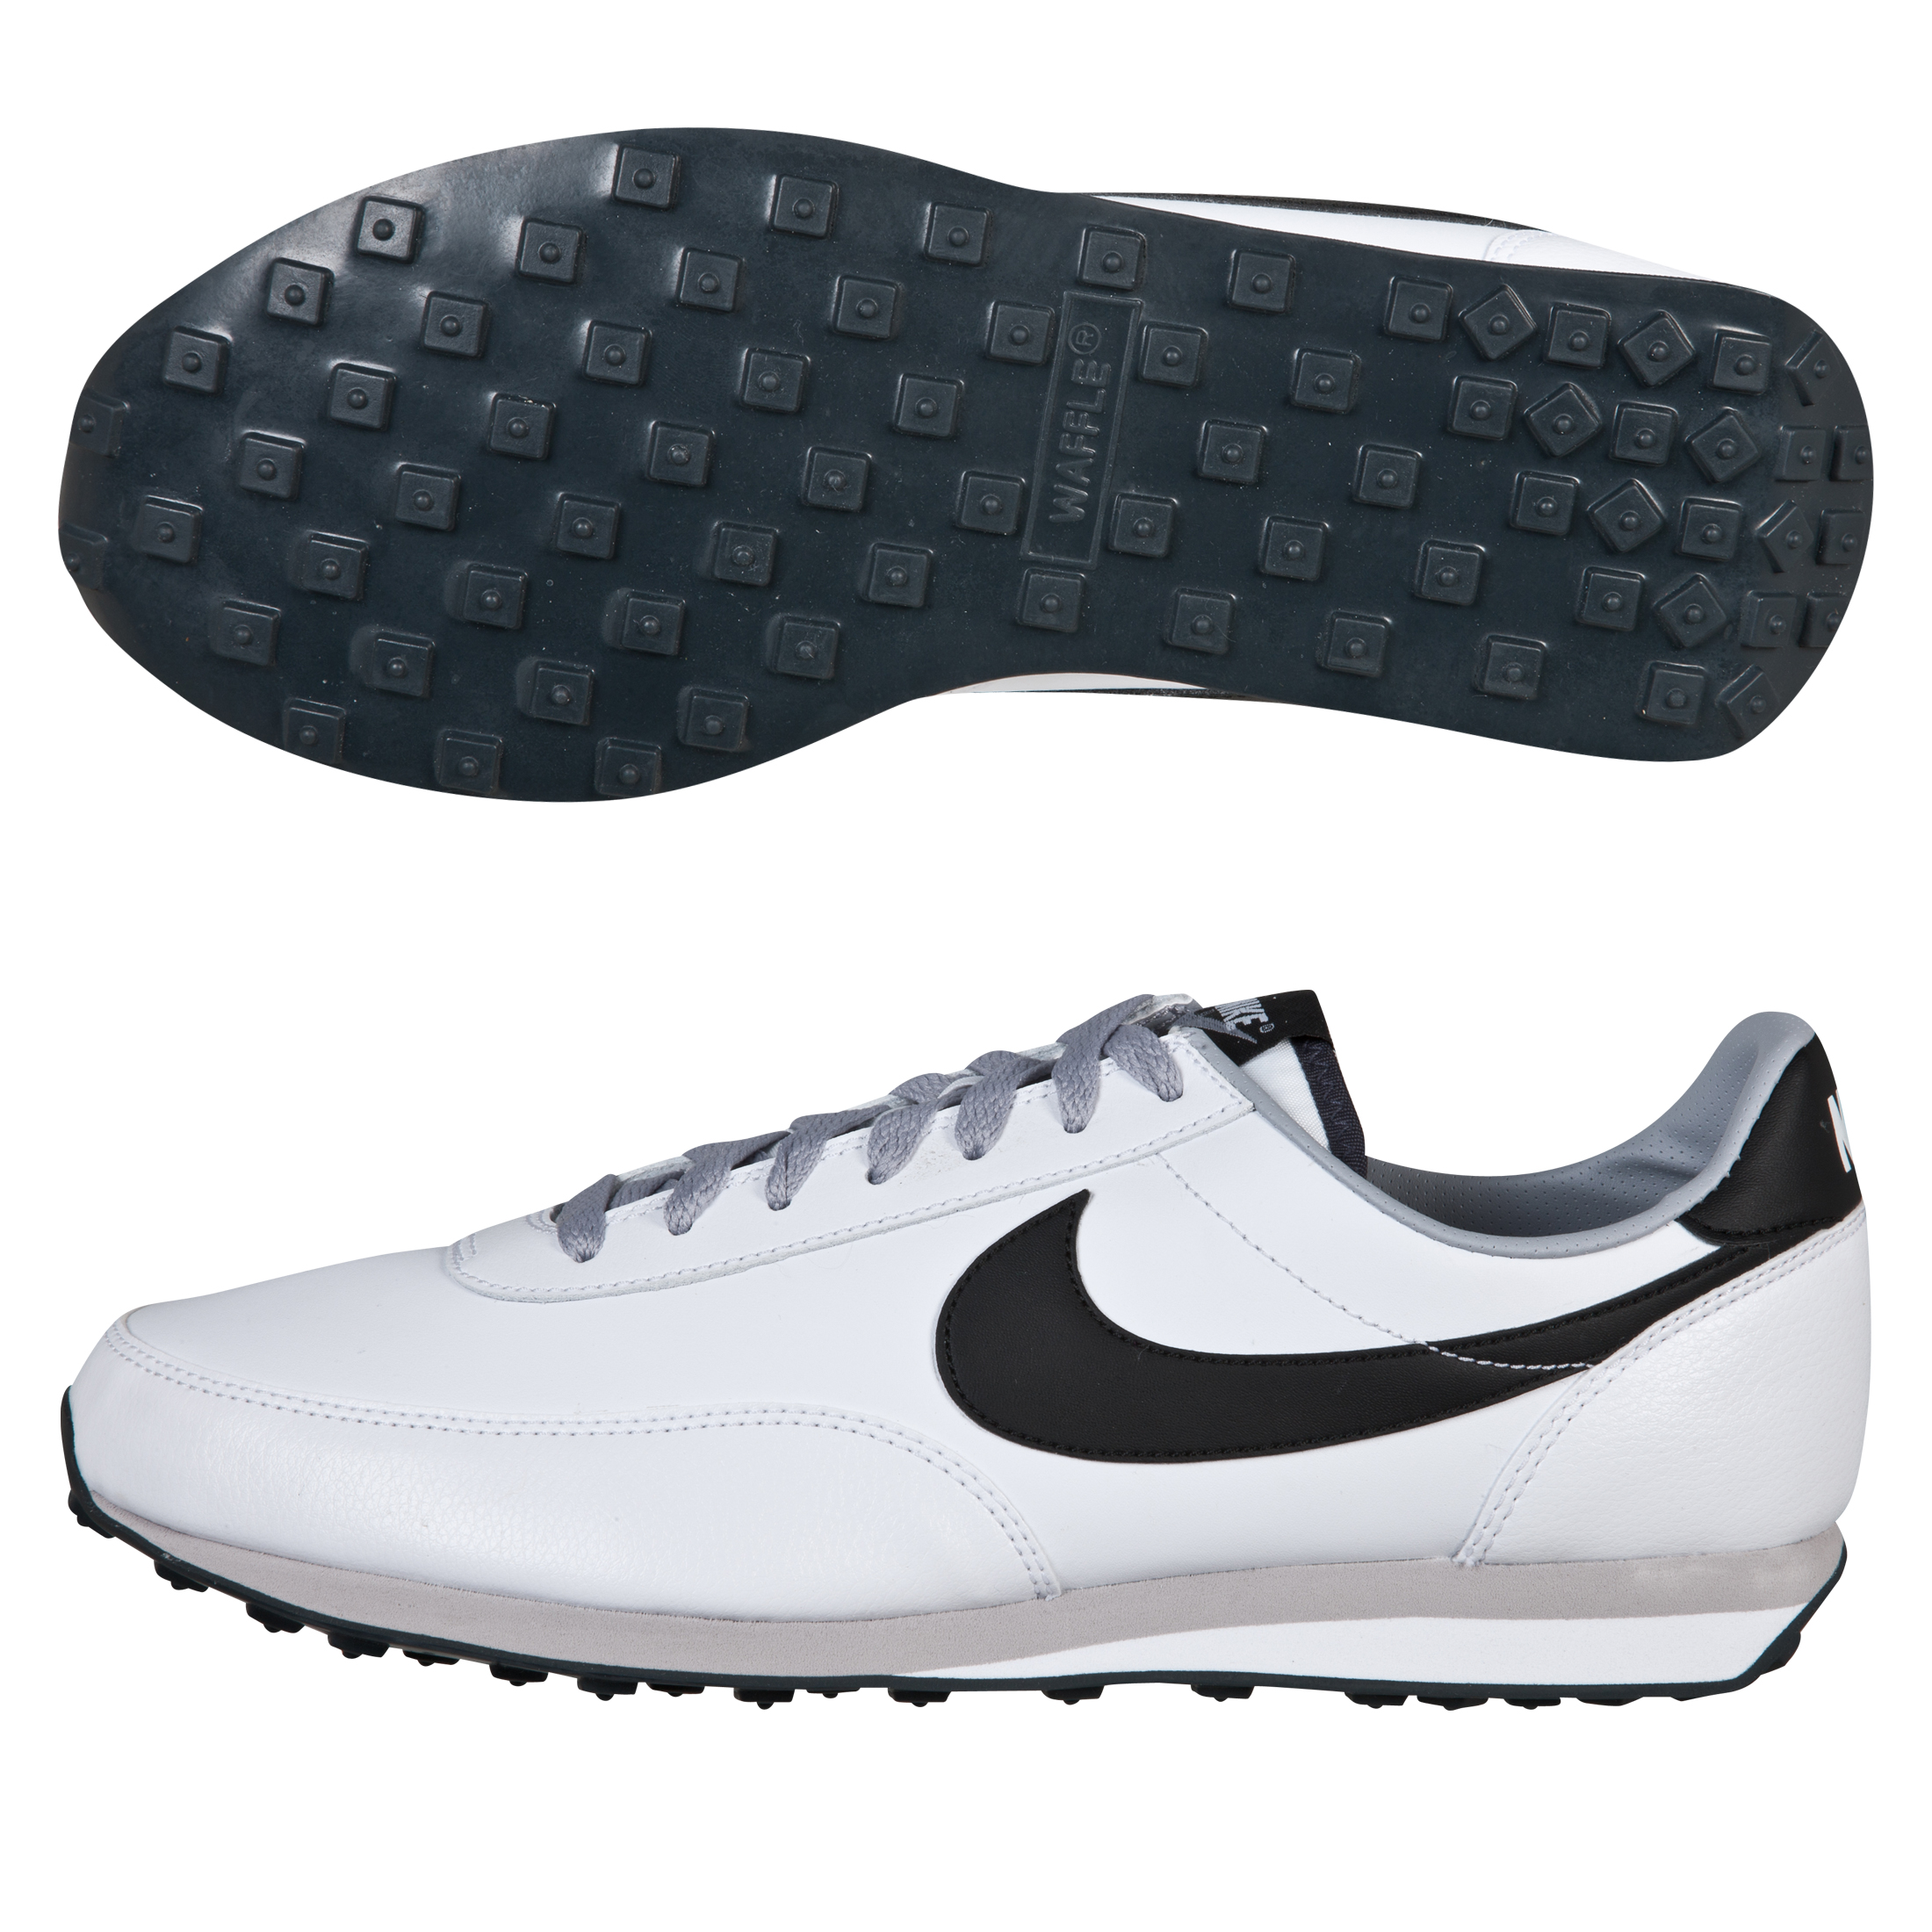 Nike Elite Leather SI Trainers - White/Black